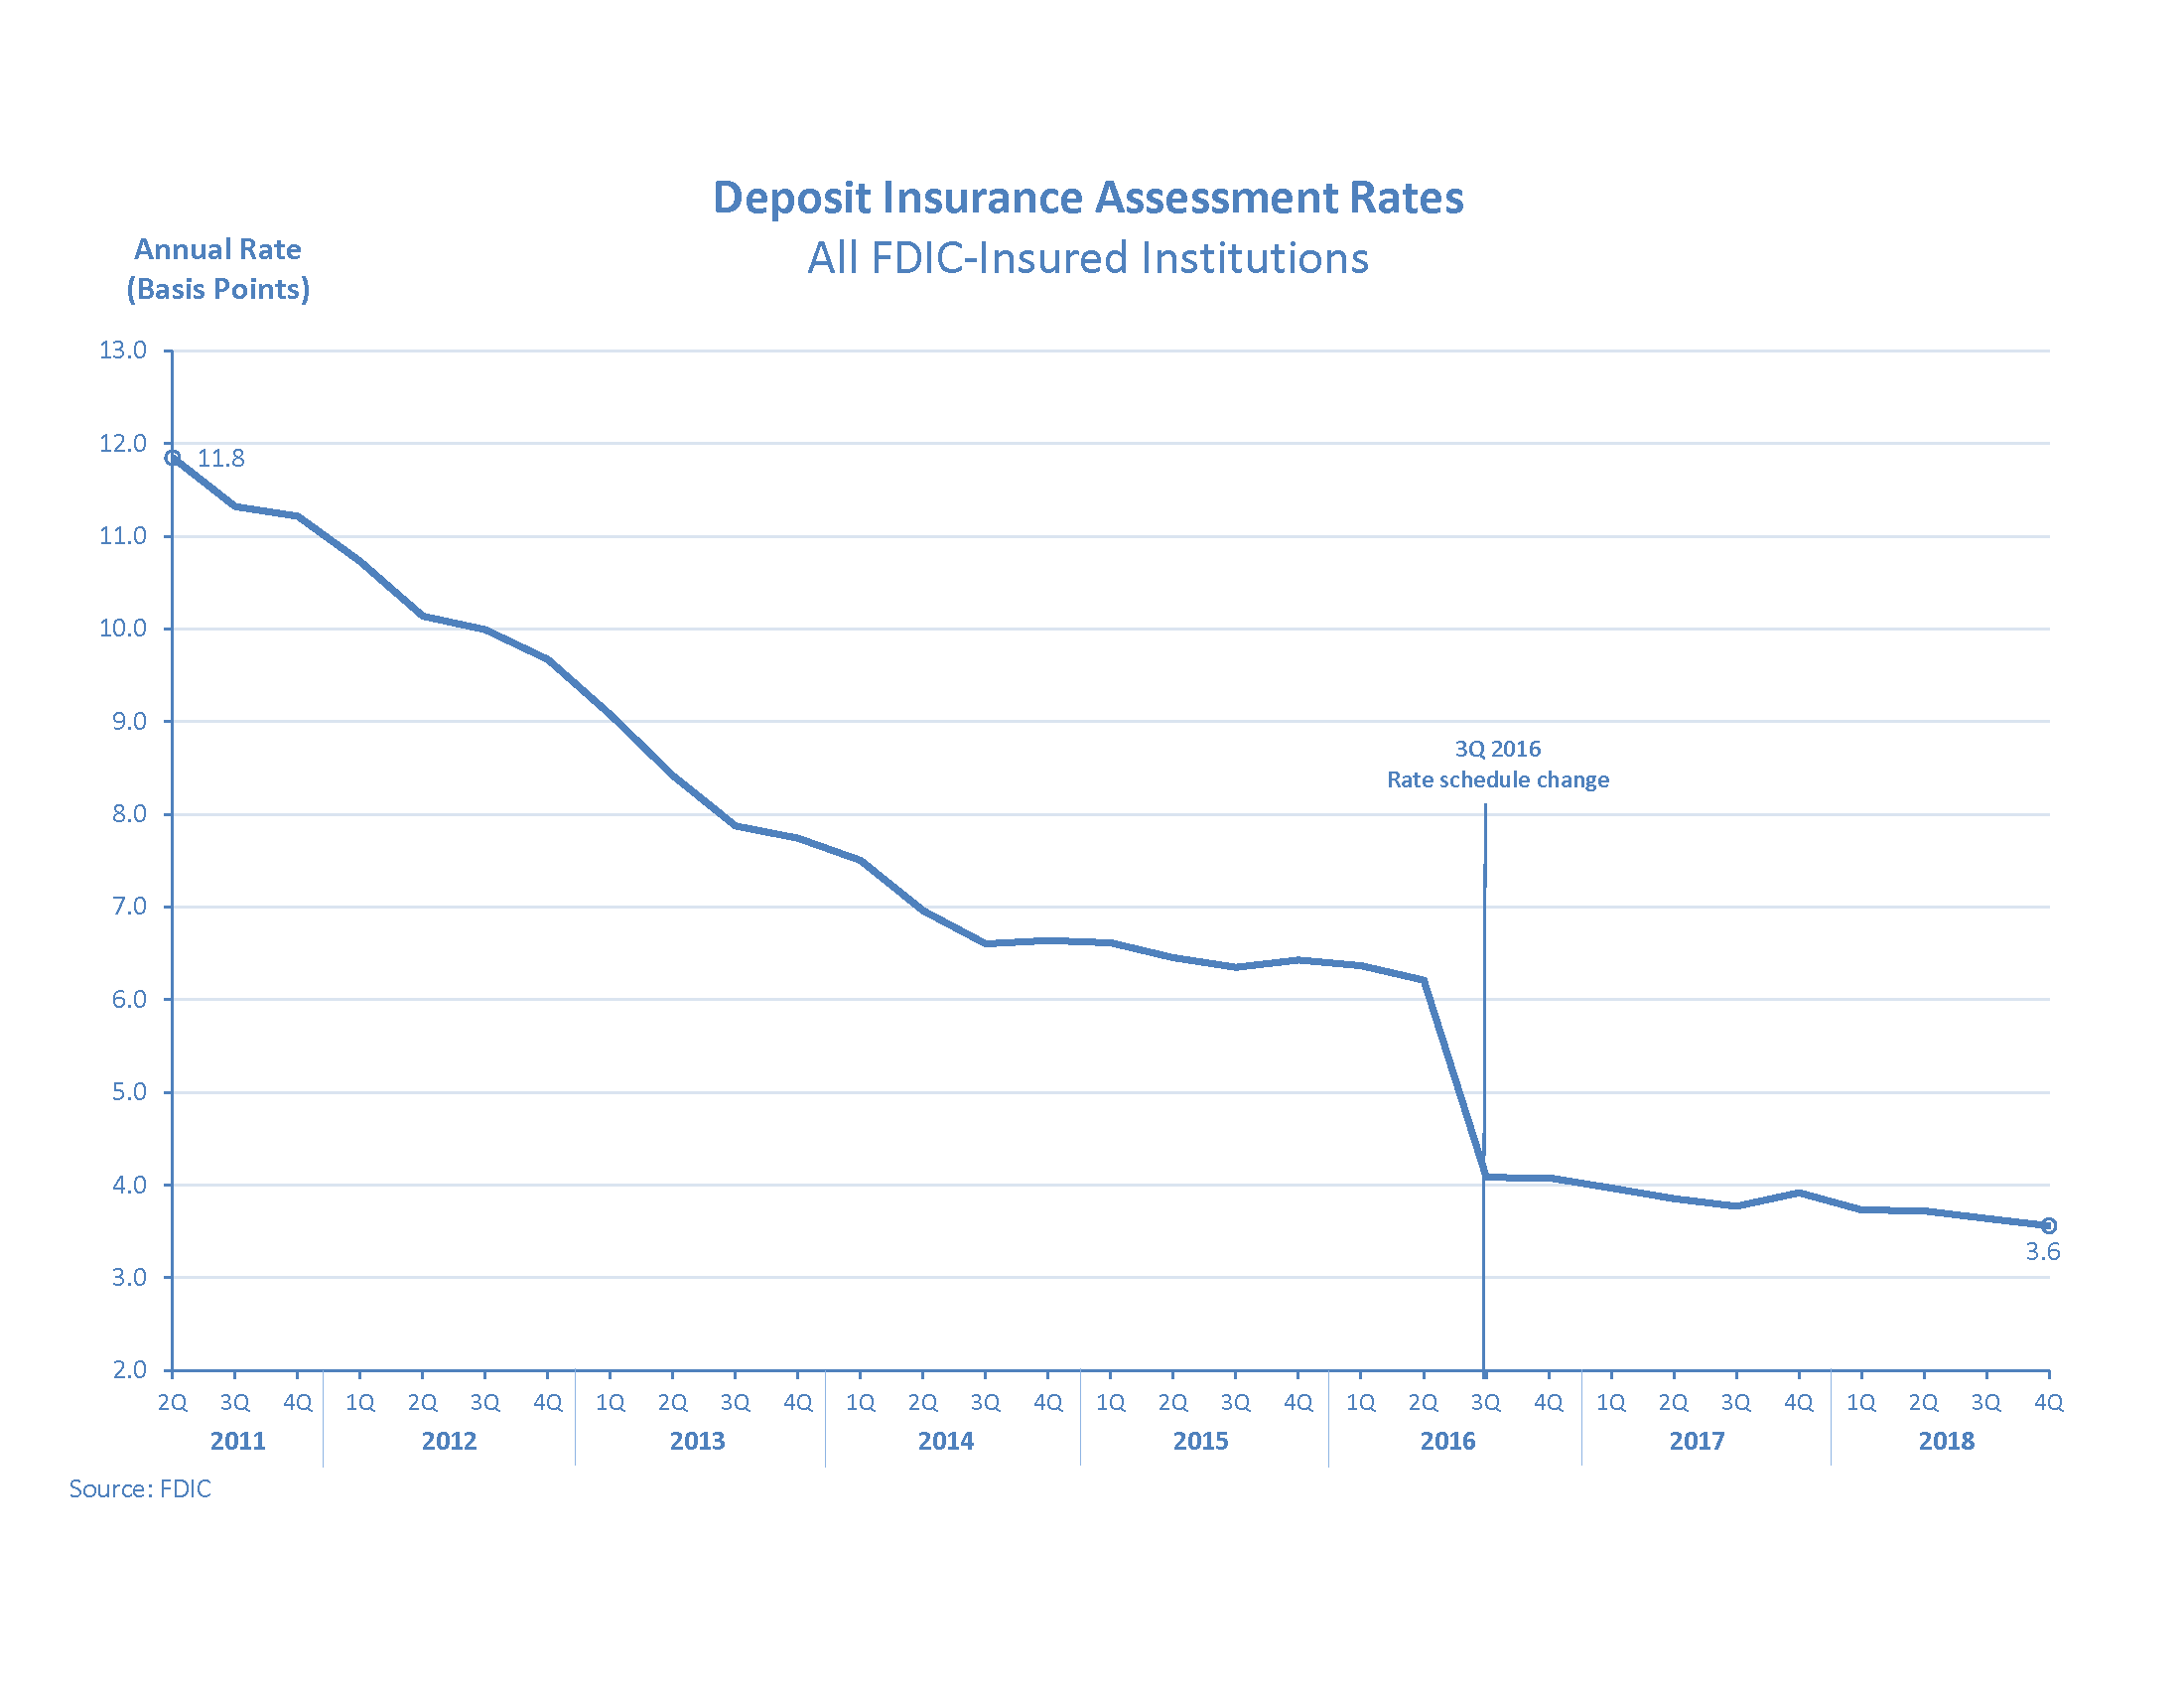 Deposit Insurance Assessment Rates for All FDIC Institutions Graph, showing downward trend in the annual rate's basis points since 2nd Quarter 2011 to 2nd Quarter 2018.  With the latest standing at 3.7 basis points, finishing first half for 2018.